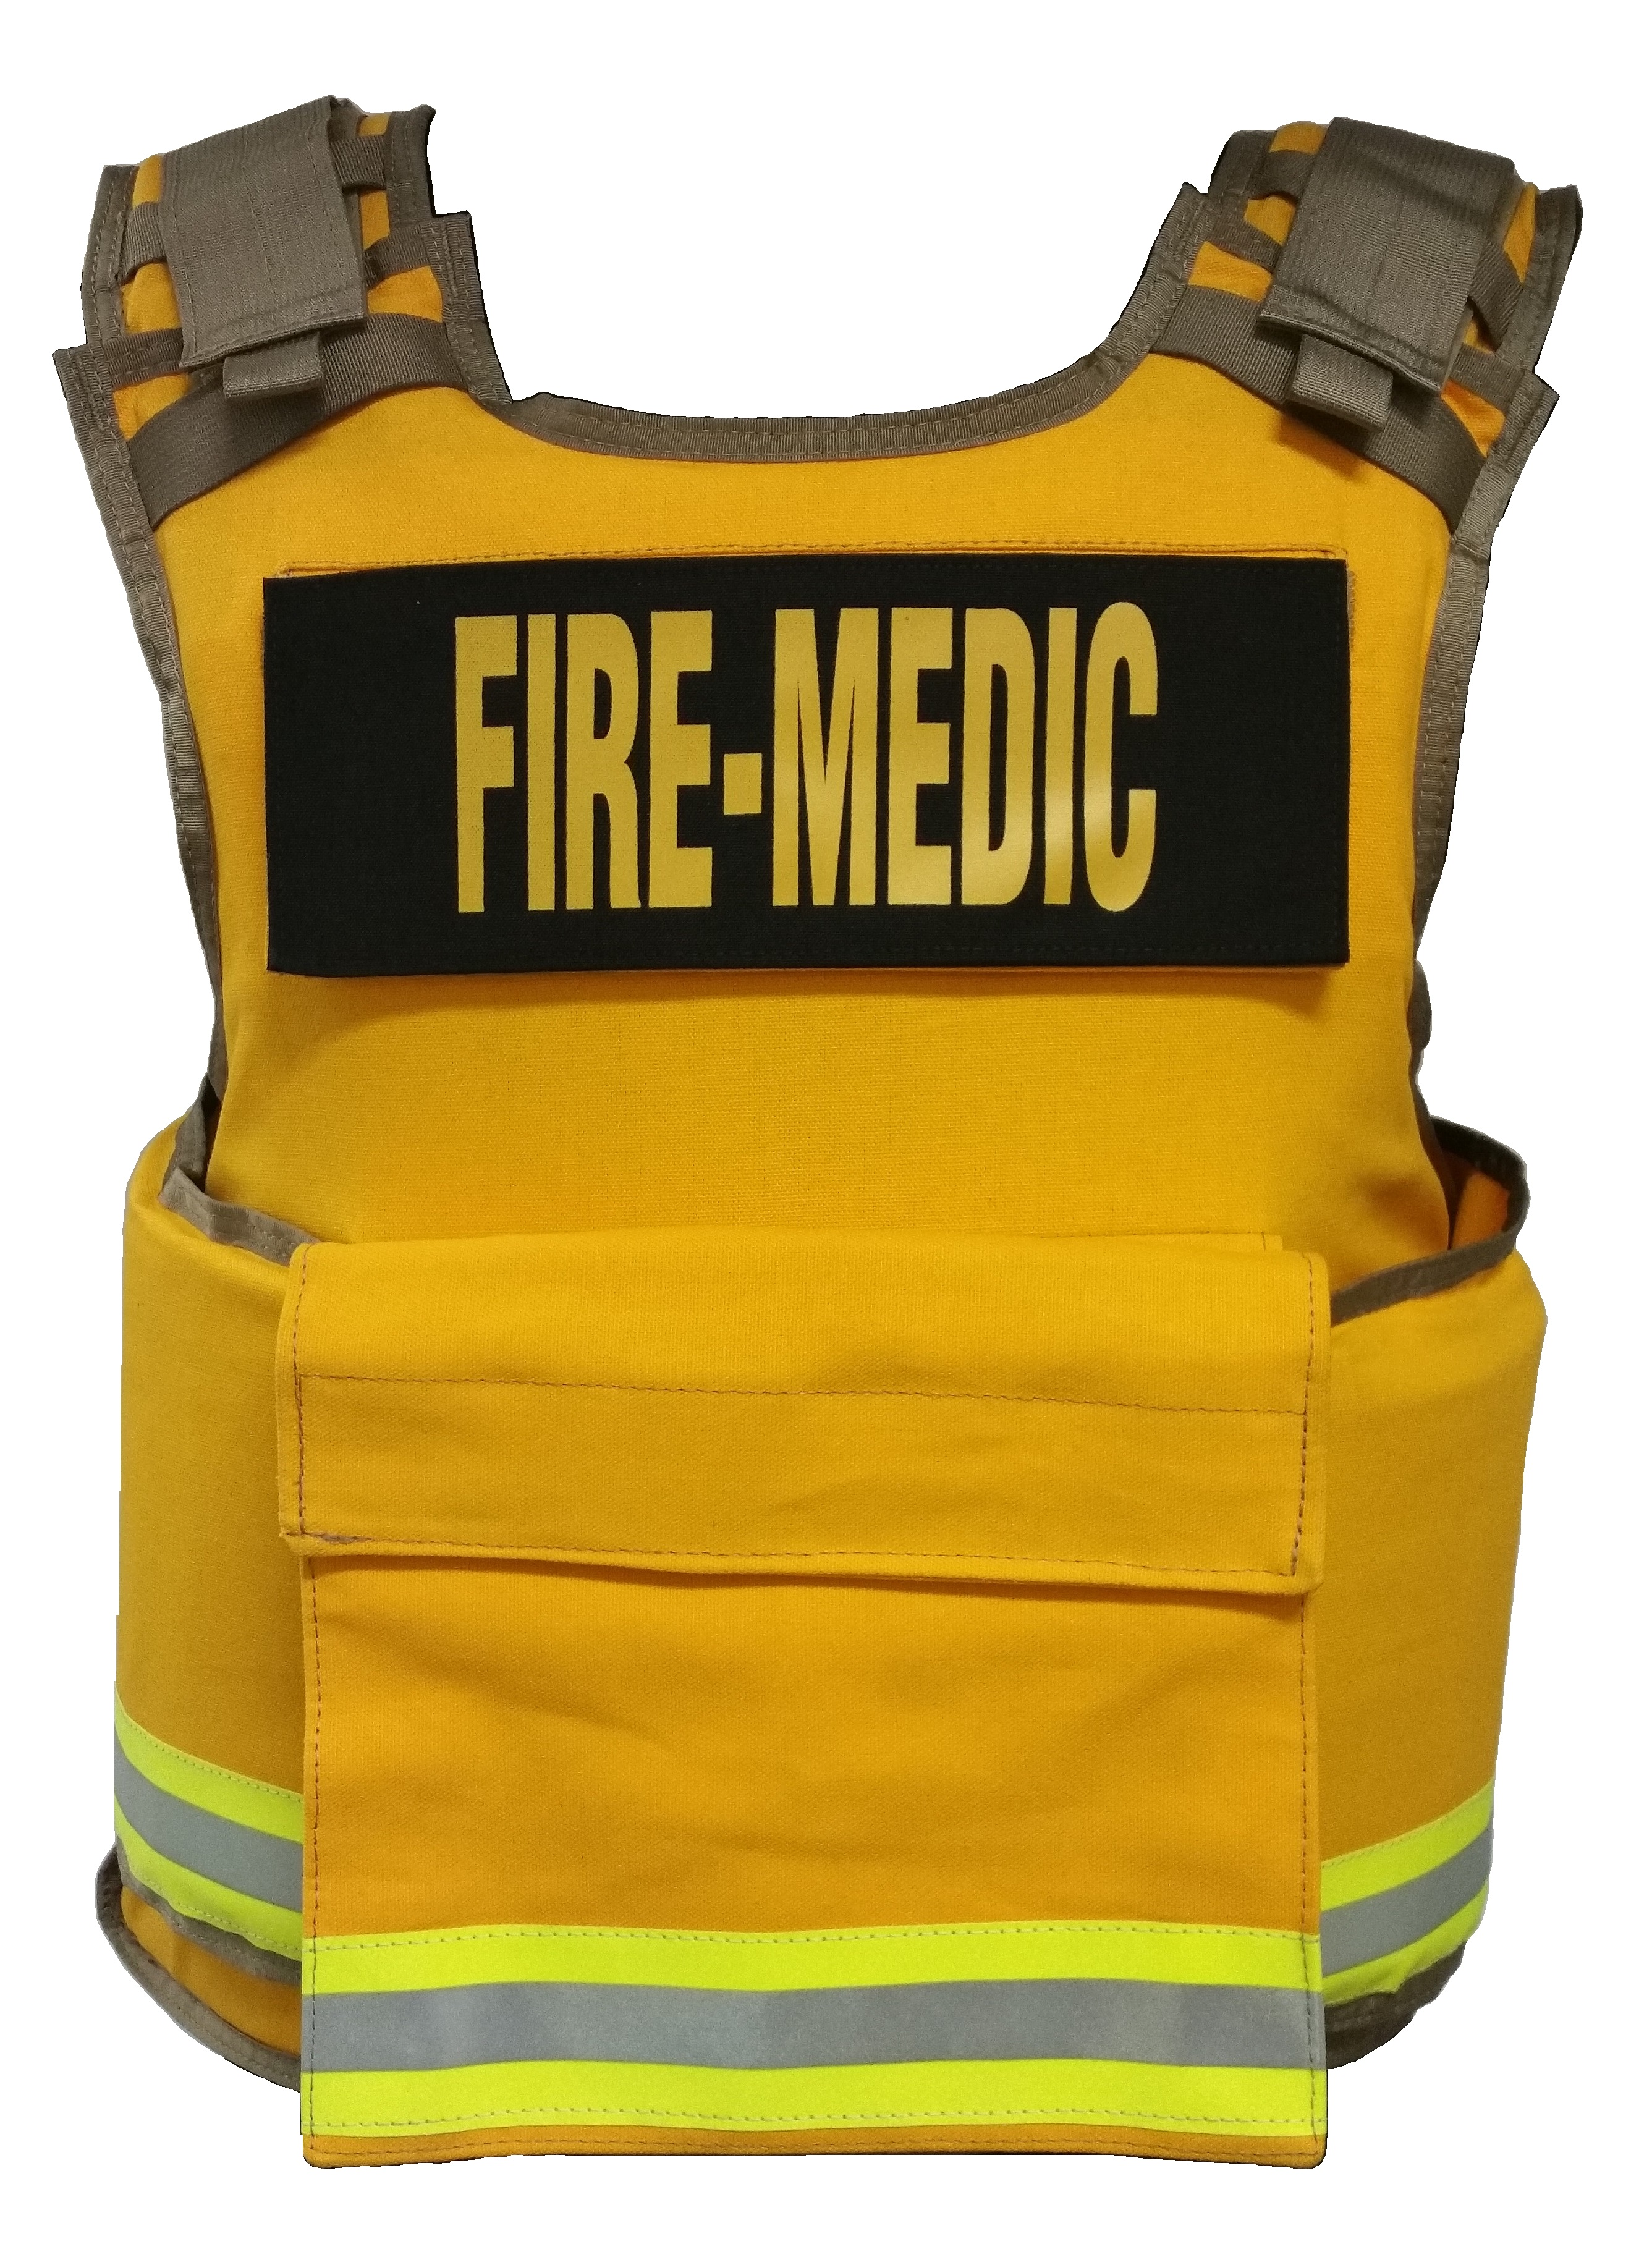 One Size Body Armor Ballistic Vest for Fire Department and EMS